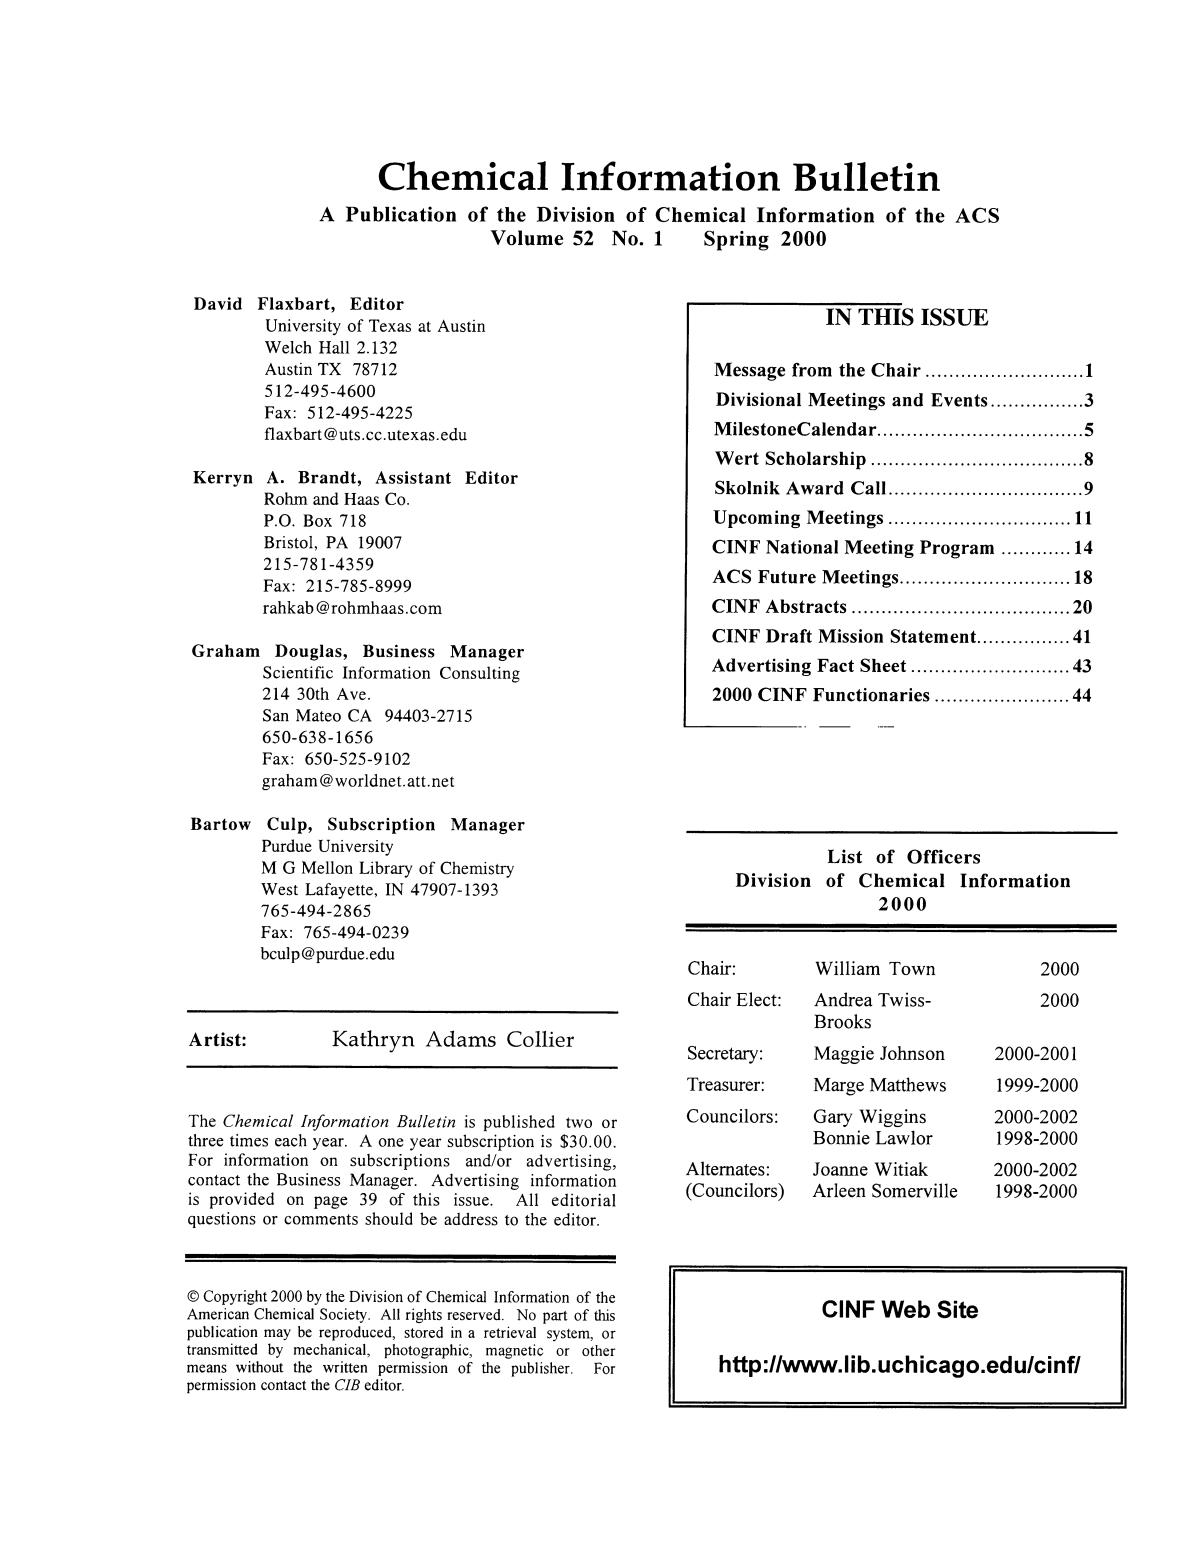 Chemical Information Bulletin, Volume 52, Number 1, Spring 2000                                                                                                      Front Inside